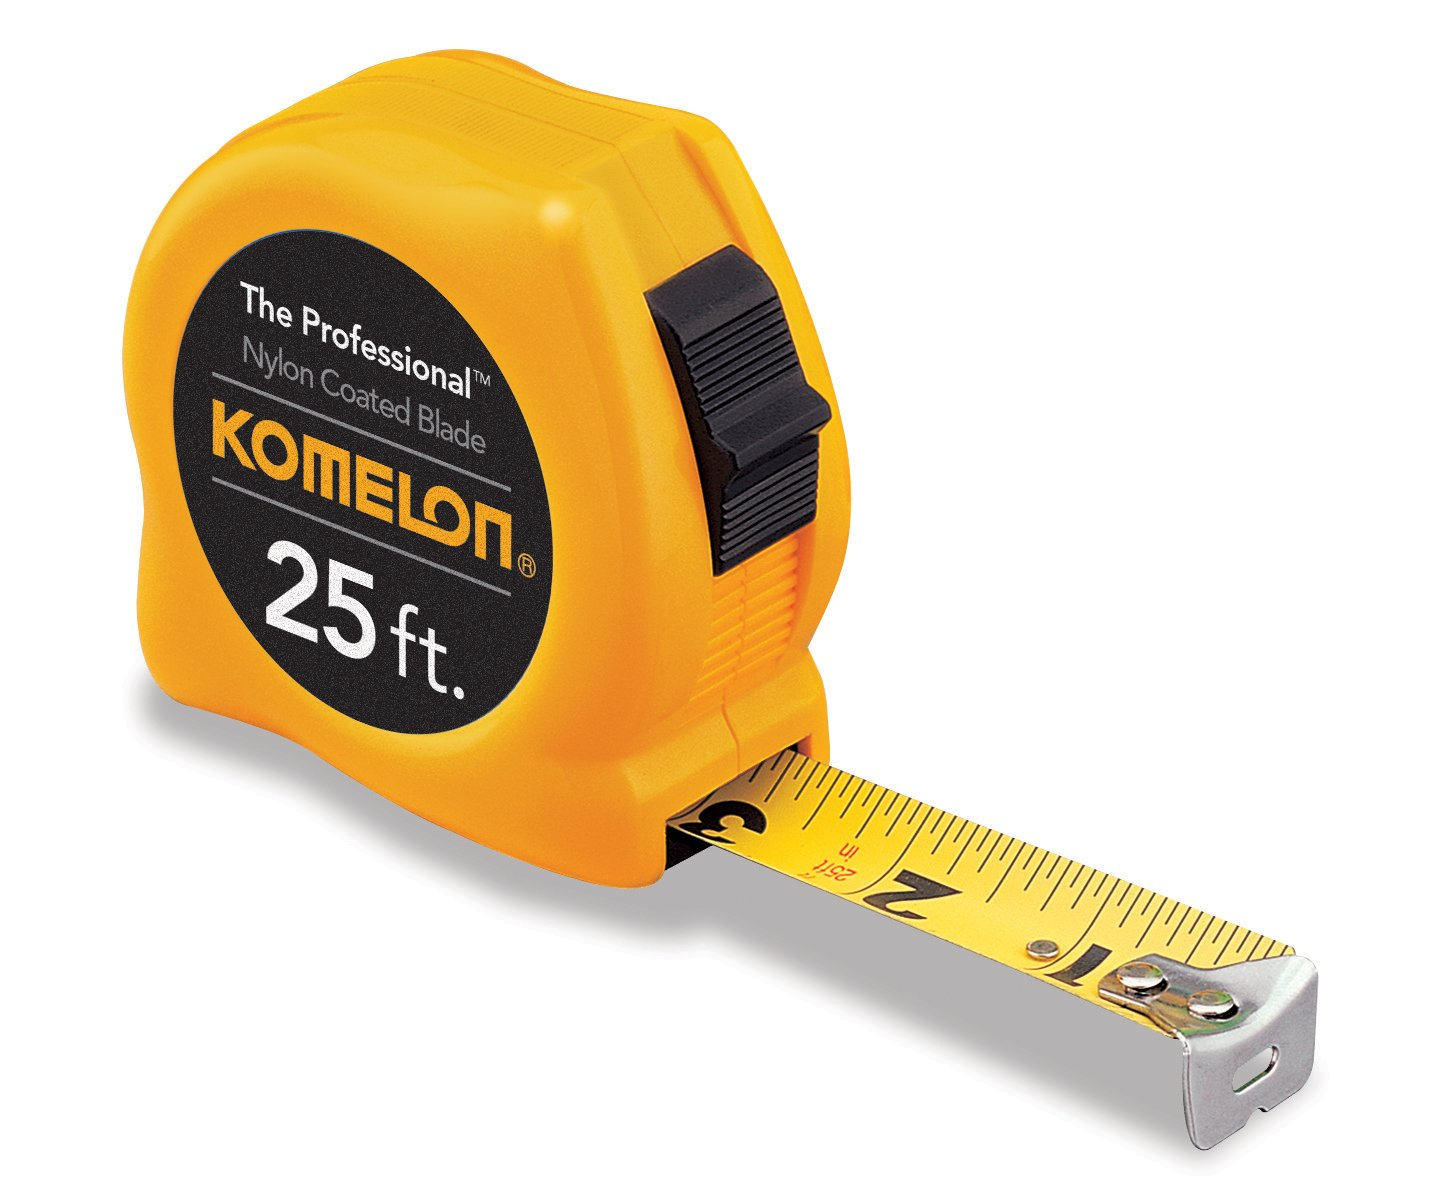 Komelon 4925 The Professional Nylon Coated Steel Blade Tape Measure 25-Inch by 1-Inch, Yellow Case